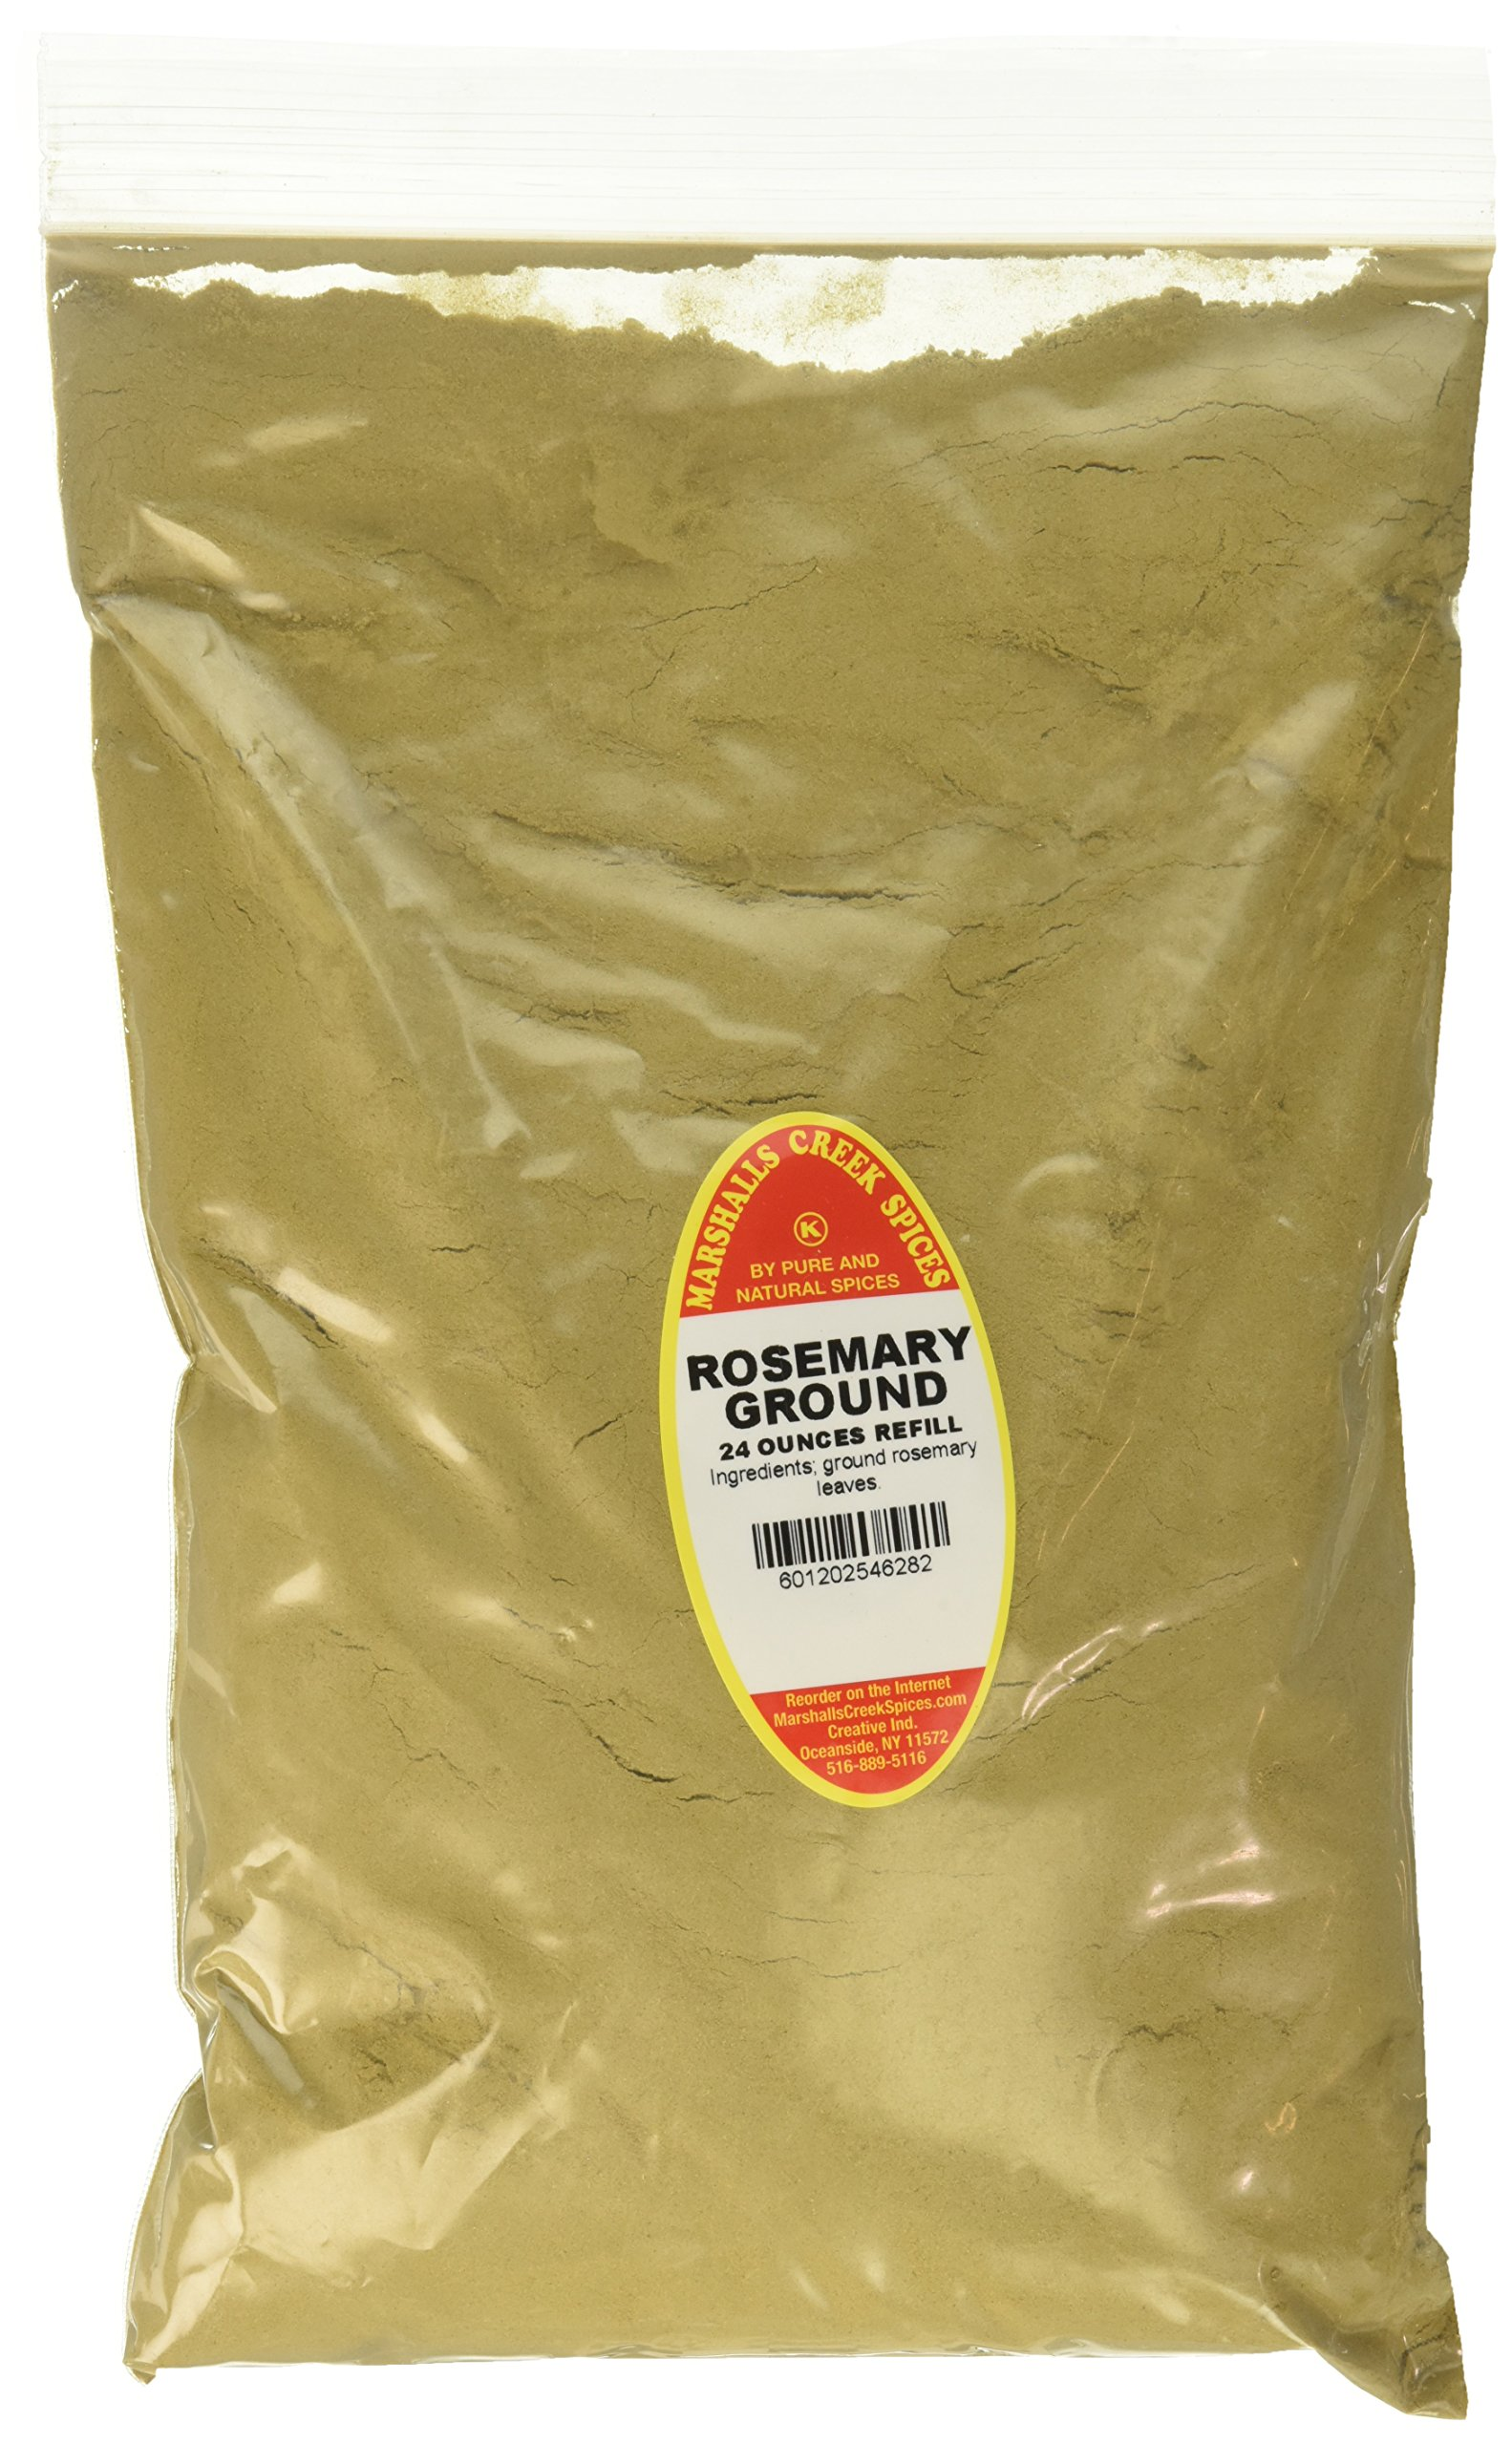 Marshalls Creek Spices Family Size Kosher Rosemary Ground Refill, 24 Ounce